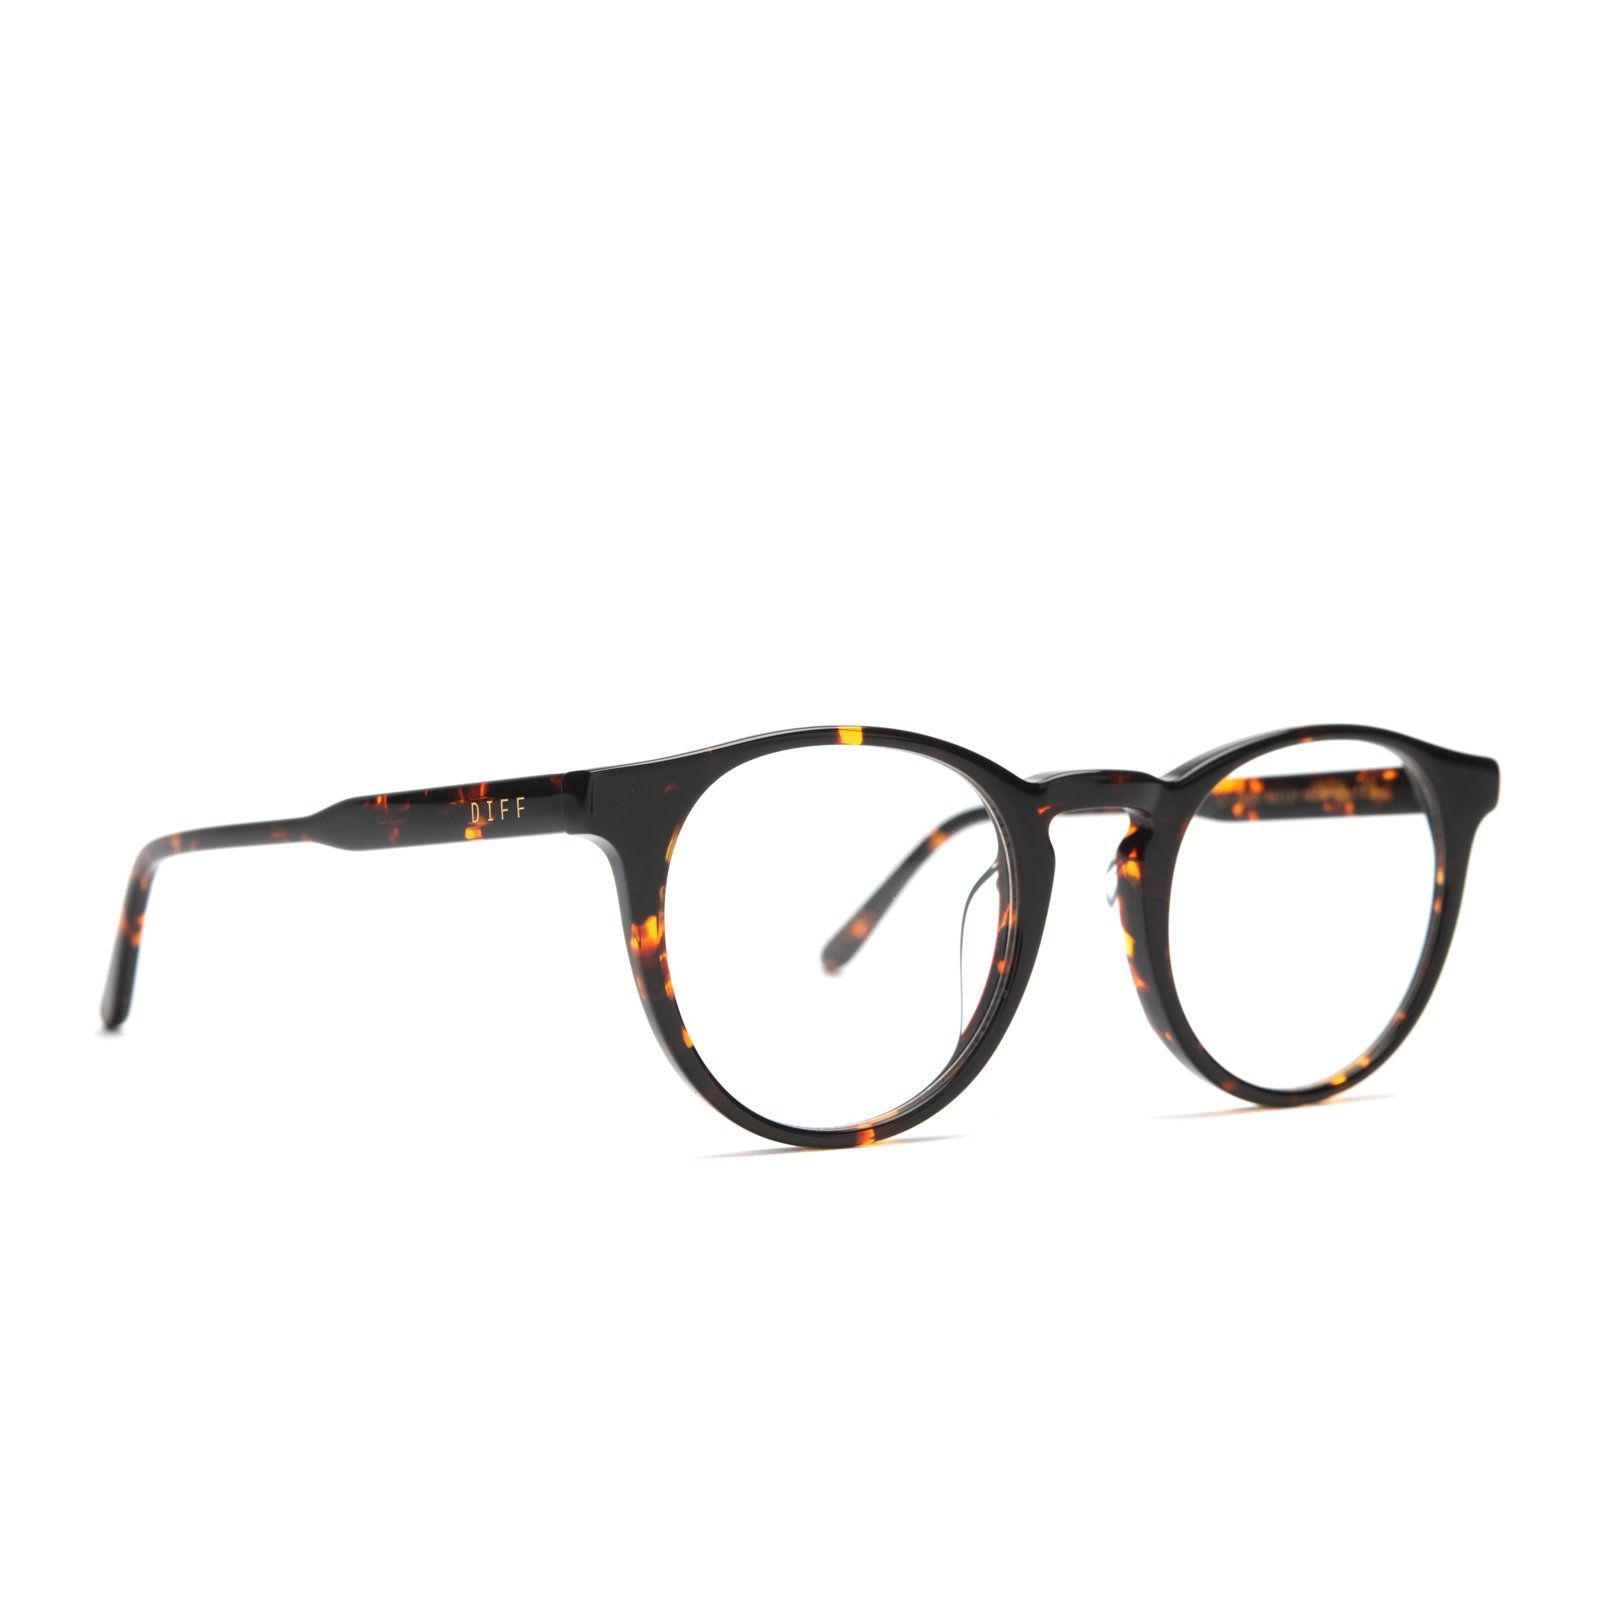 Add A Level Of Sophistication To Your Look In The Sawyer. With It�s Classic Frame And Slightly Retro Vibe, These Glasses Were Made To Turn Heads.